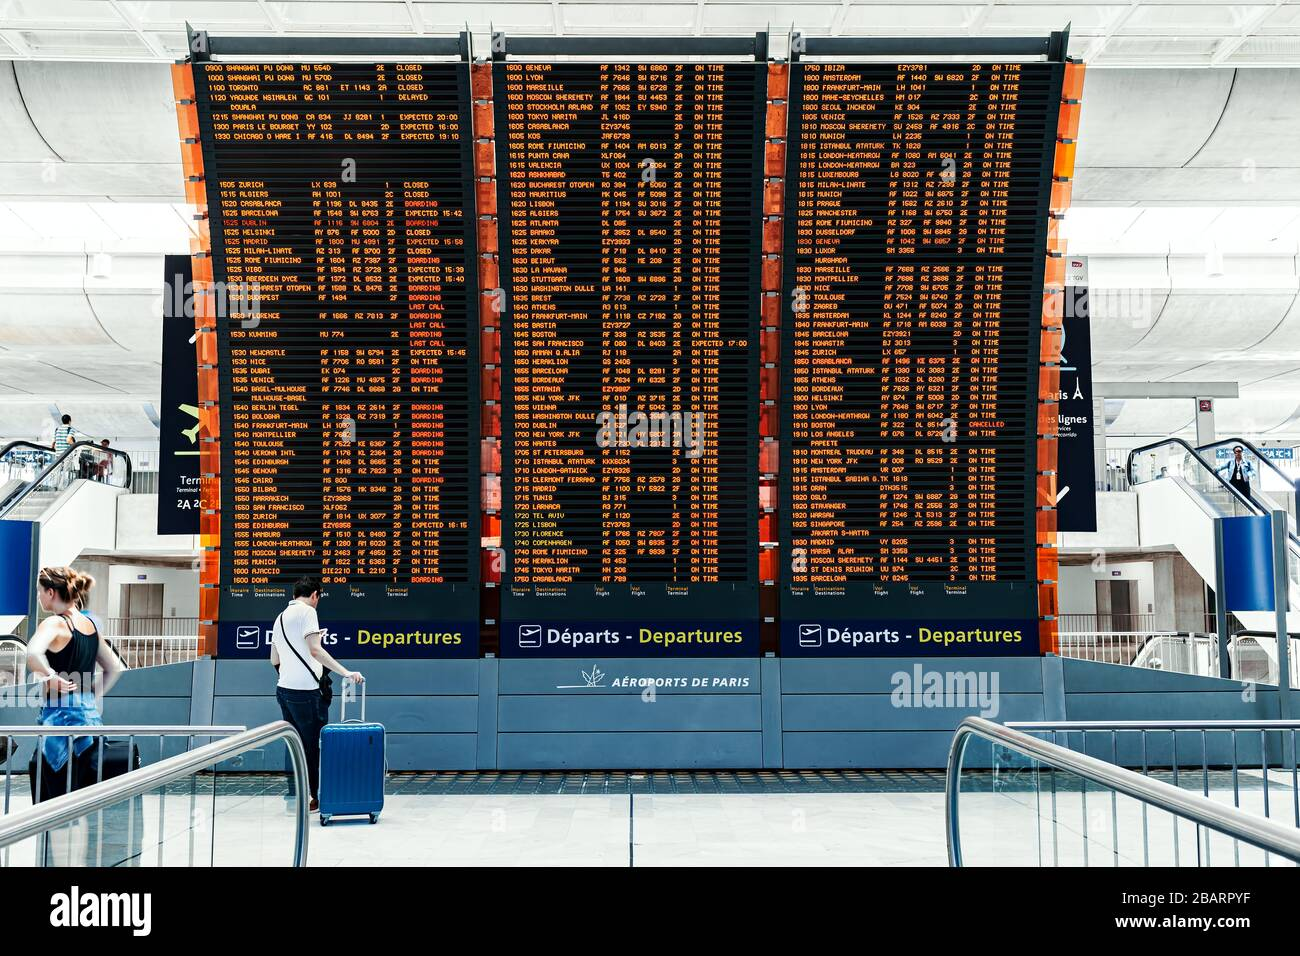 Charles De Gaulle Airport High Resolution Stock Photography And Images Alamy